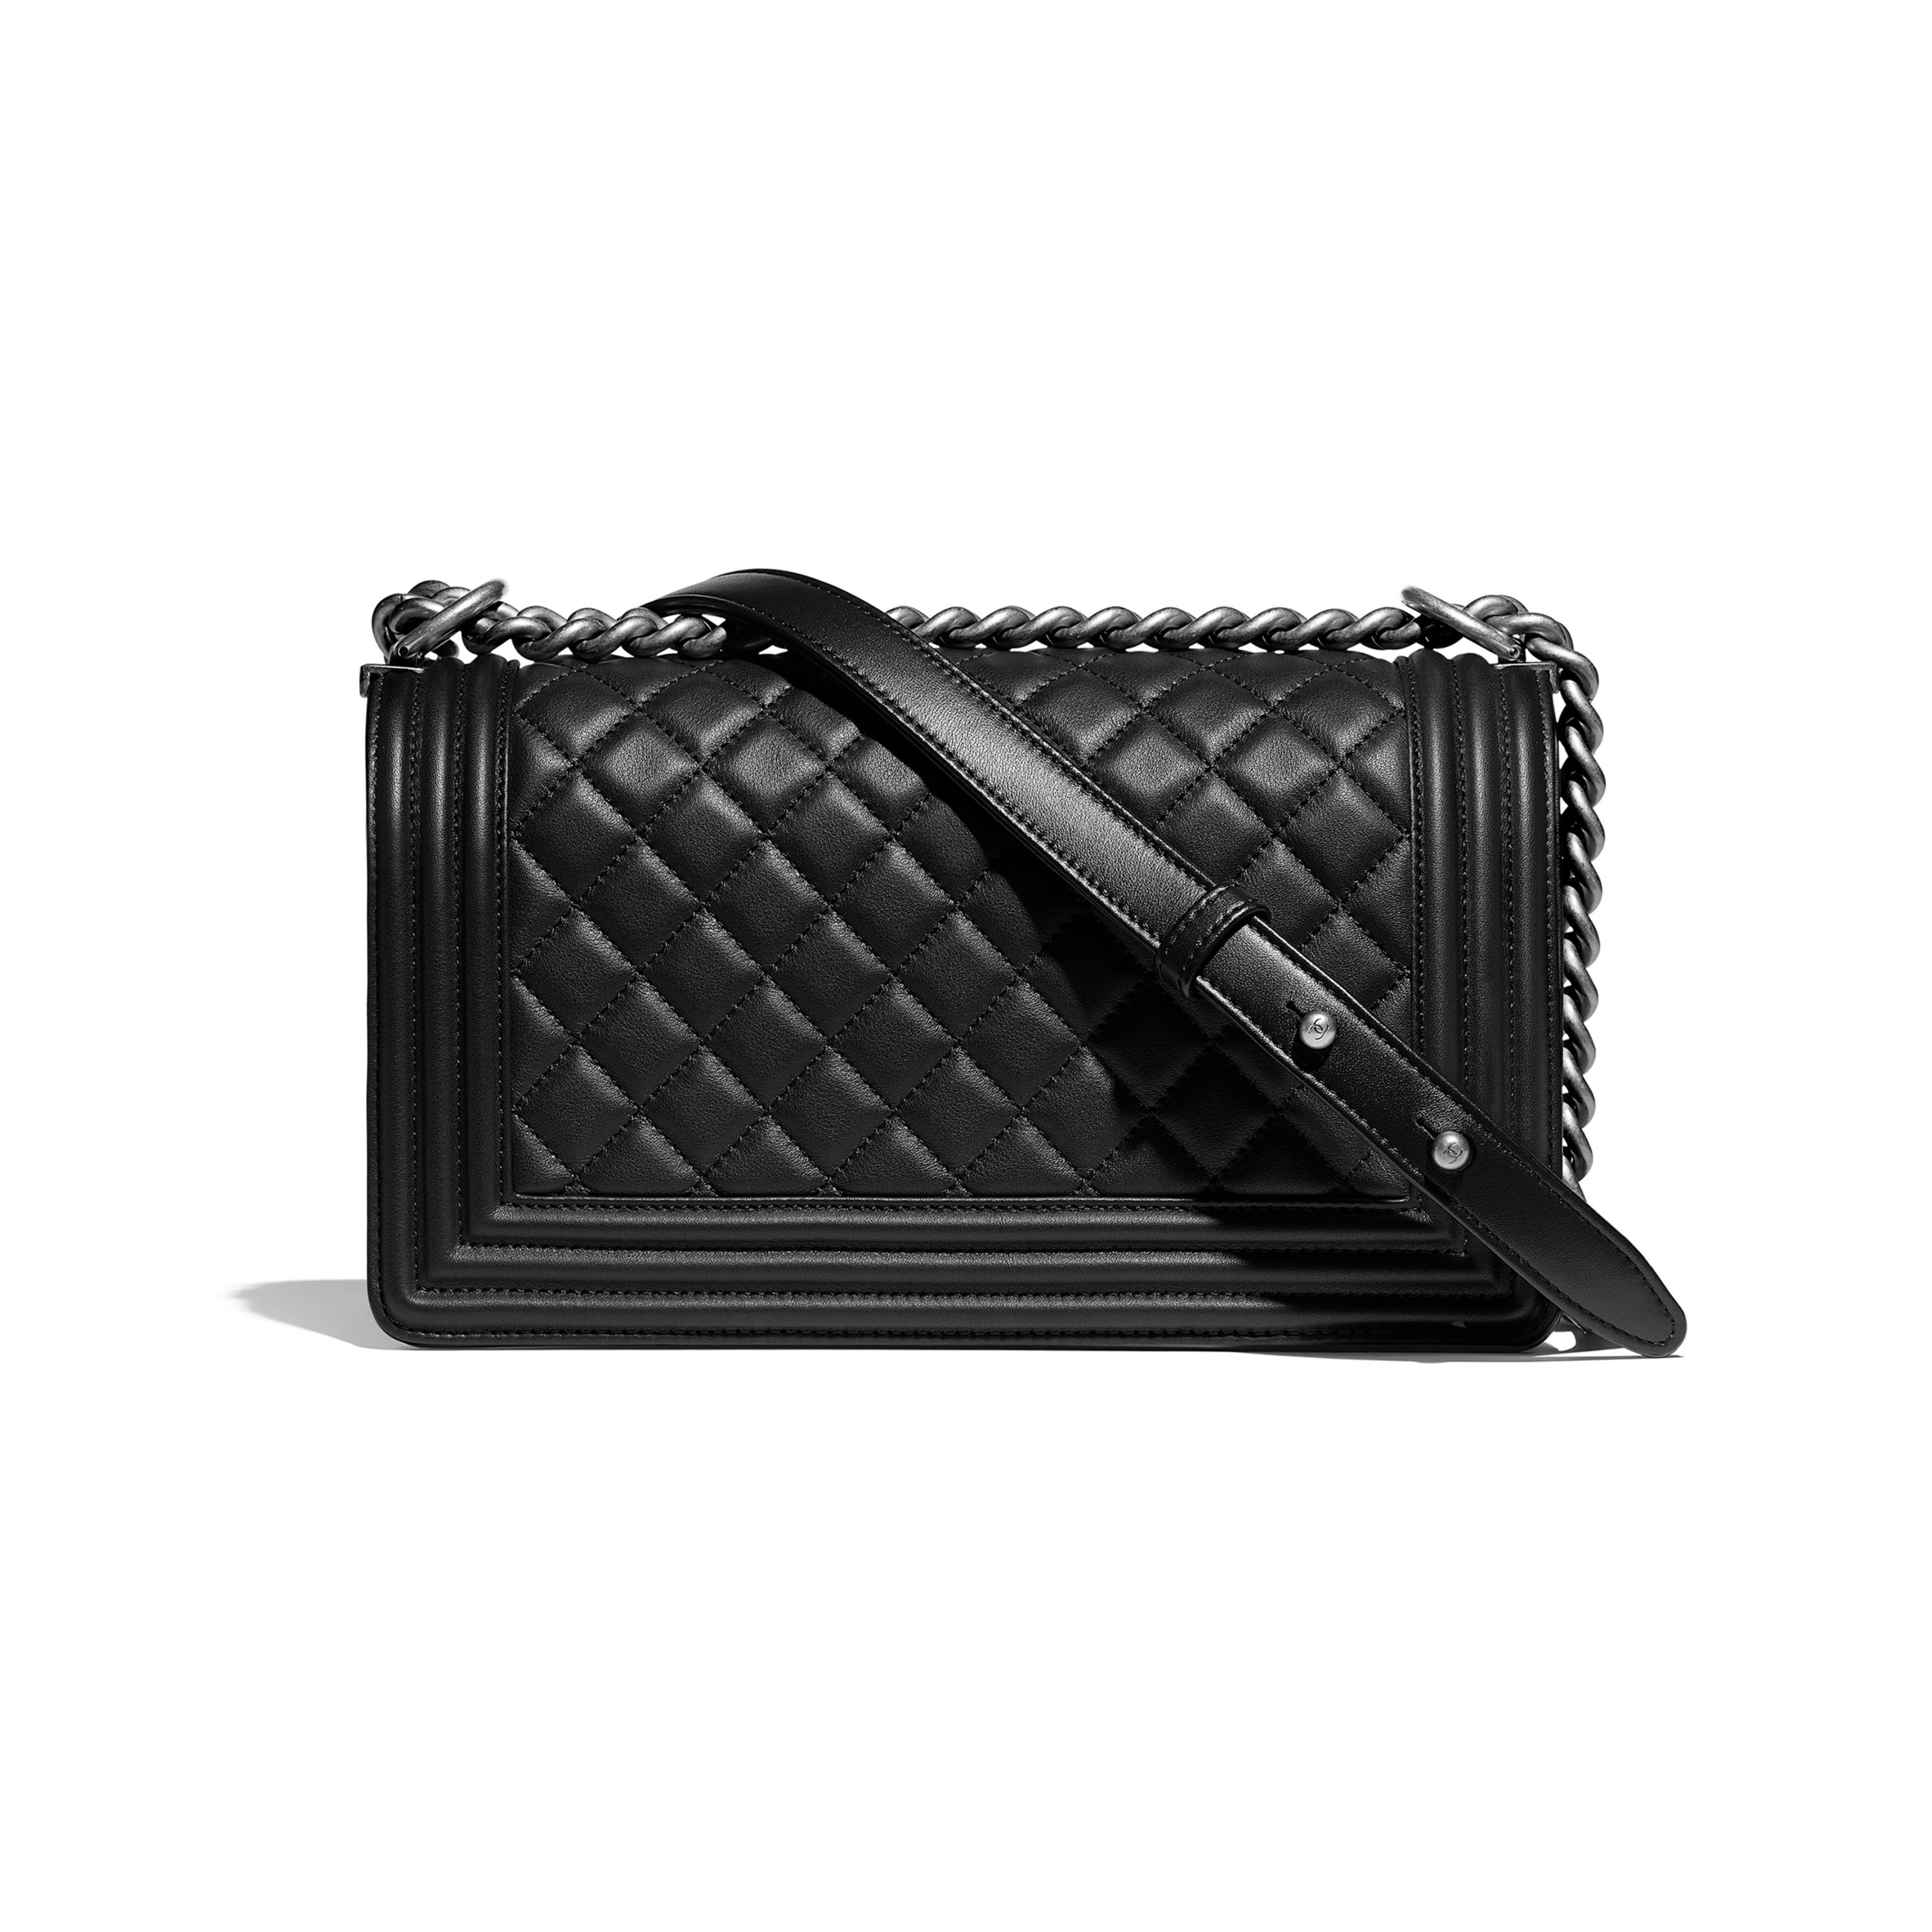 dbf0a9e18e7d Boy Chanel Handbag Calfskin & Ruthenium-finish Metal | Stanford ...